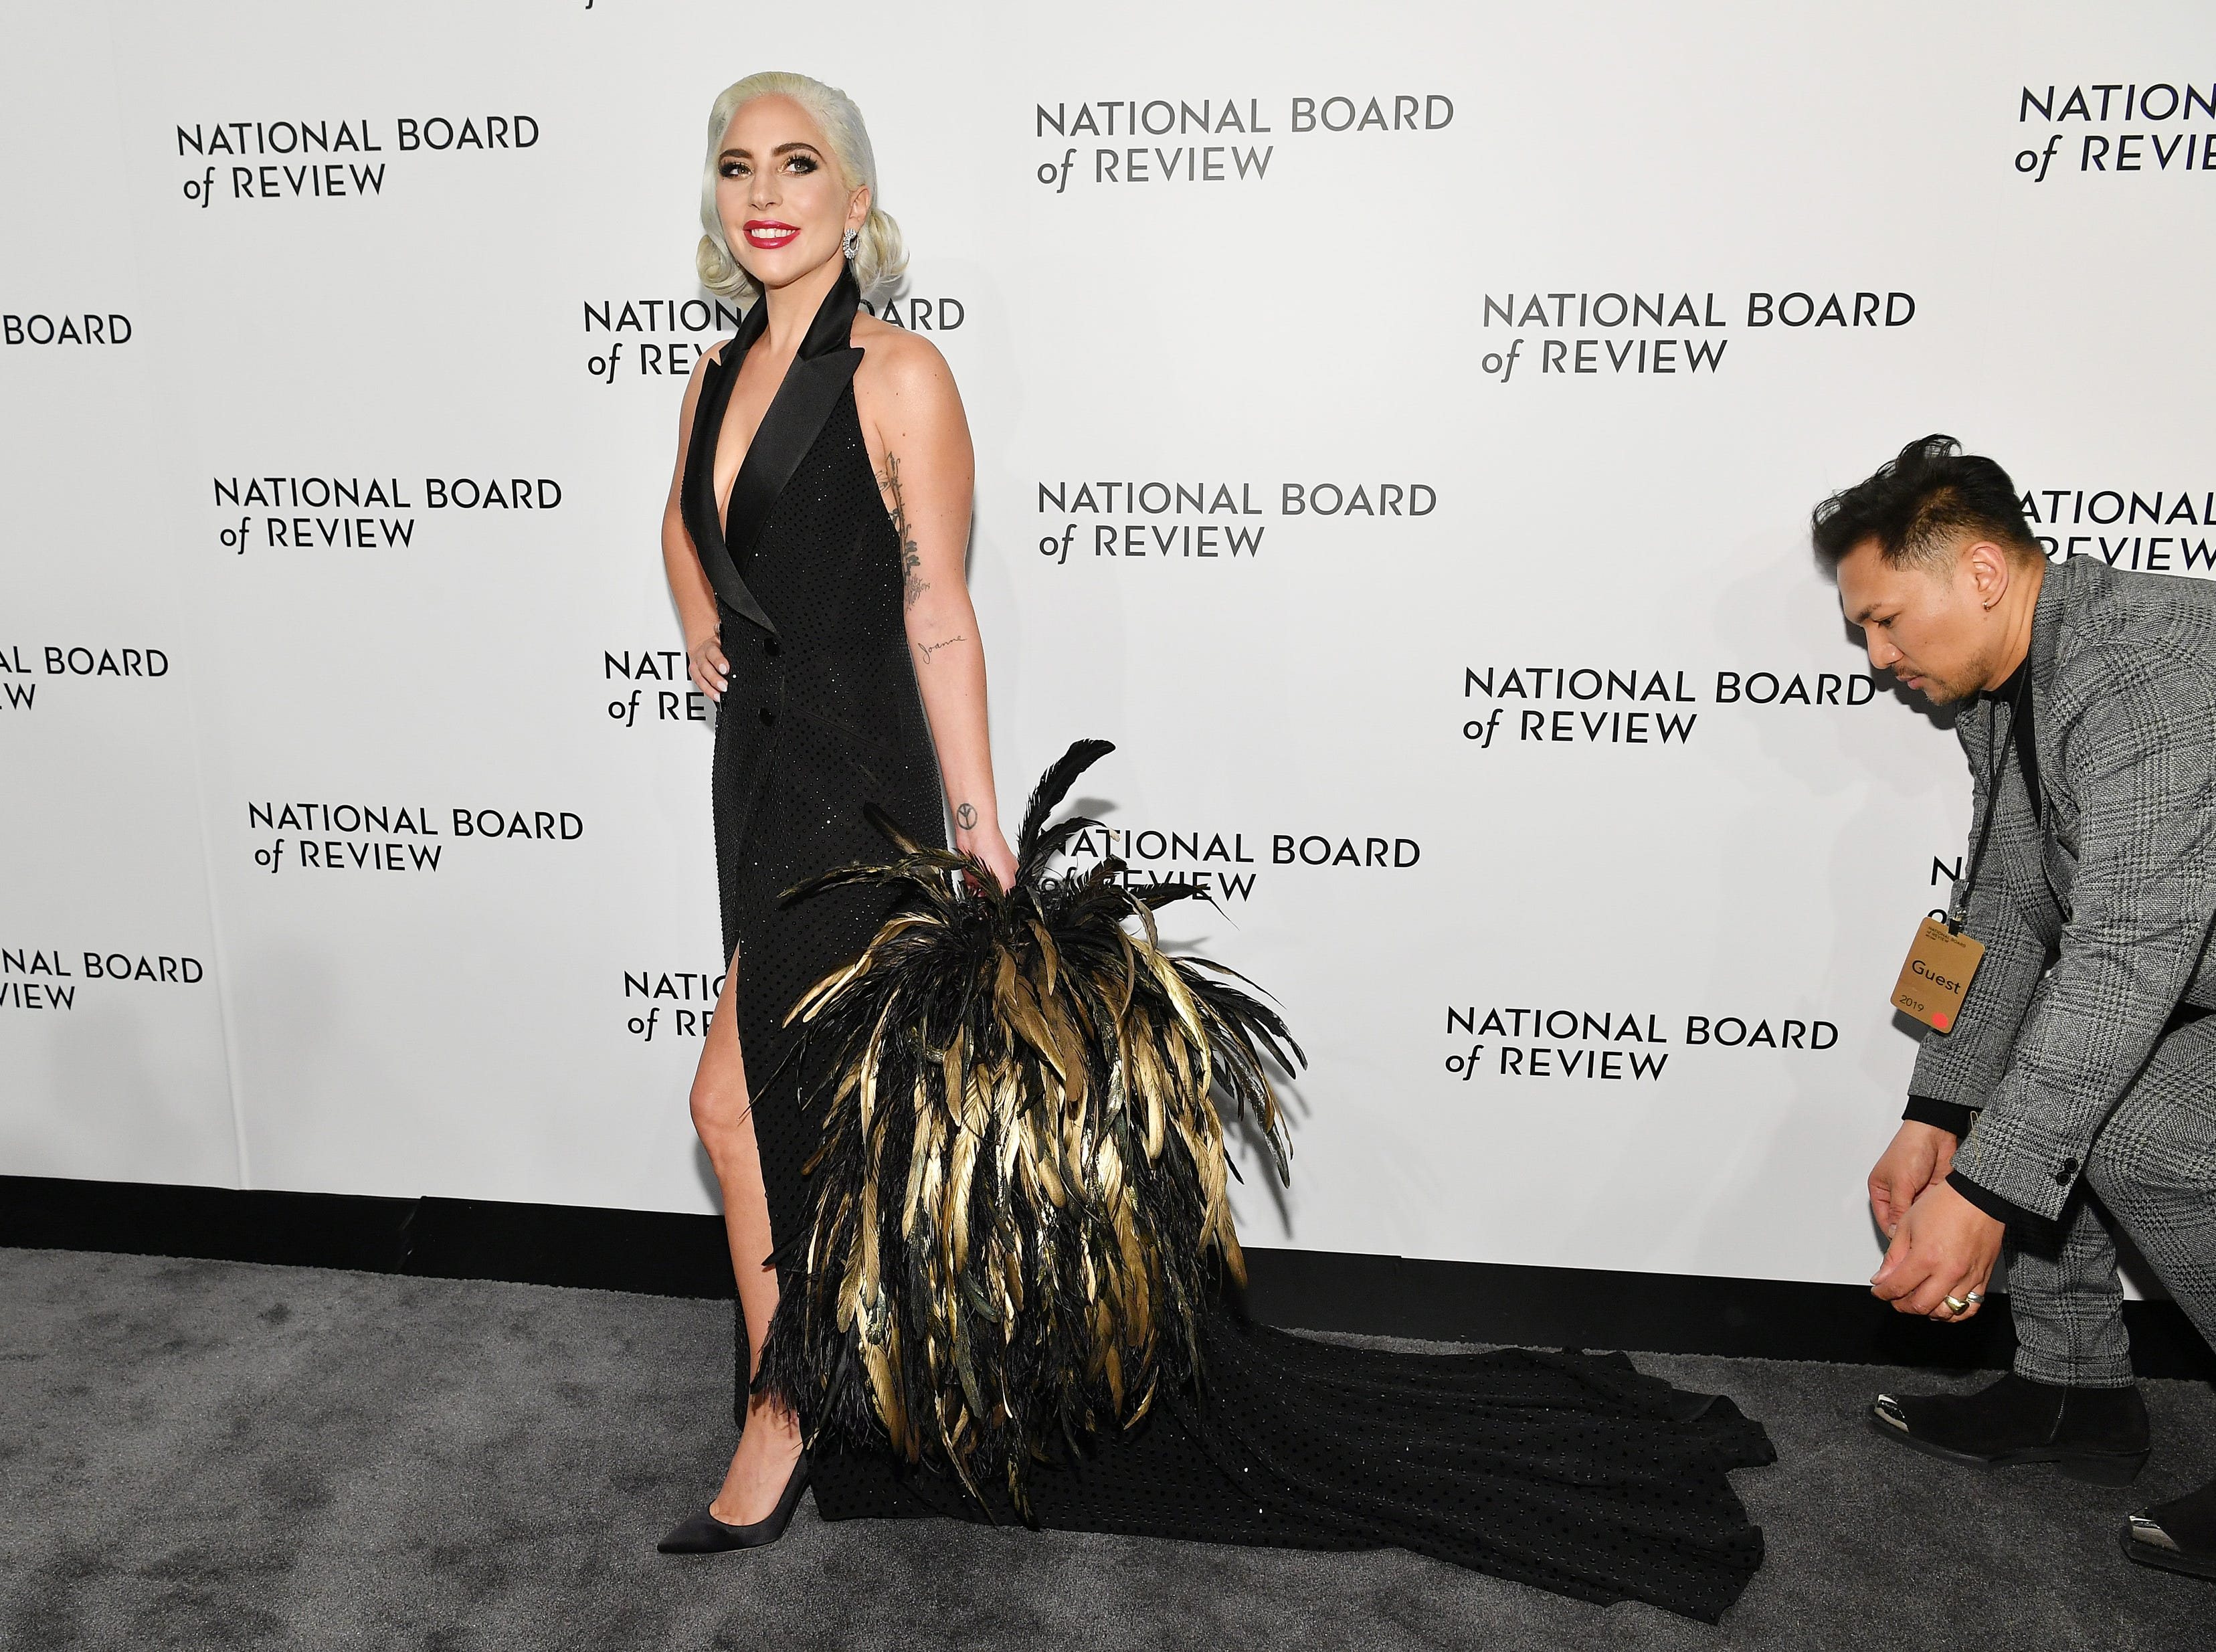 NEW YORK, NY - JANUARY 08:  Lady Gaga attends The National Board of Review Annual Awards Gala at Cipriani 42nd Street on January 8, 2019 in New York City.  (Photo by Dia Dipasupil/Getty Images for National Board of Review) ORG XMIT: 775259363 ORIG FILE ID: 1079453742